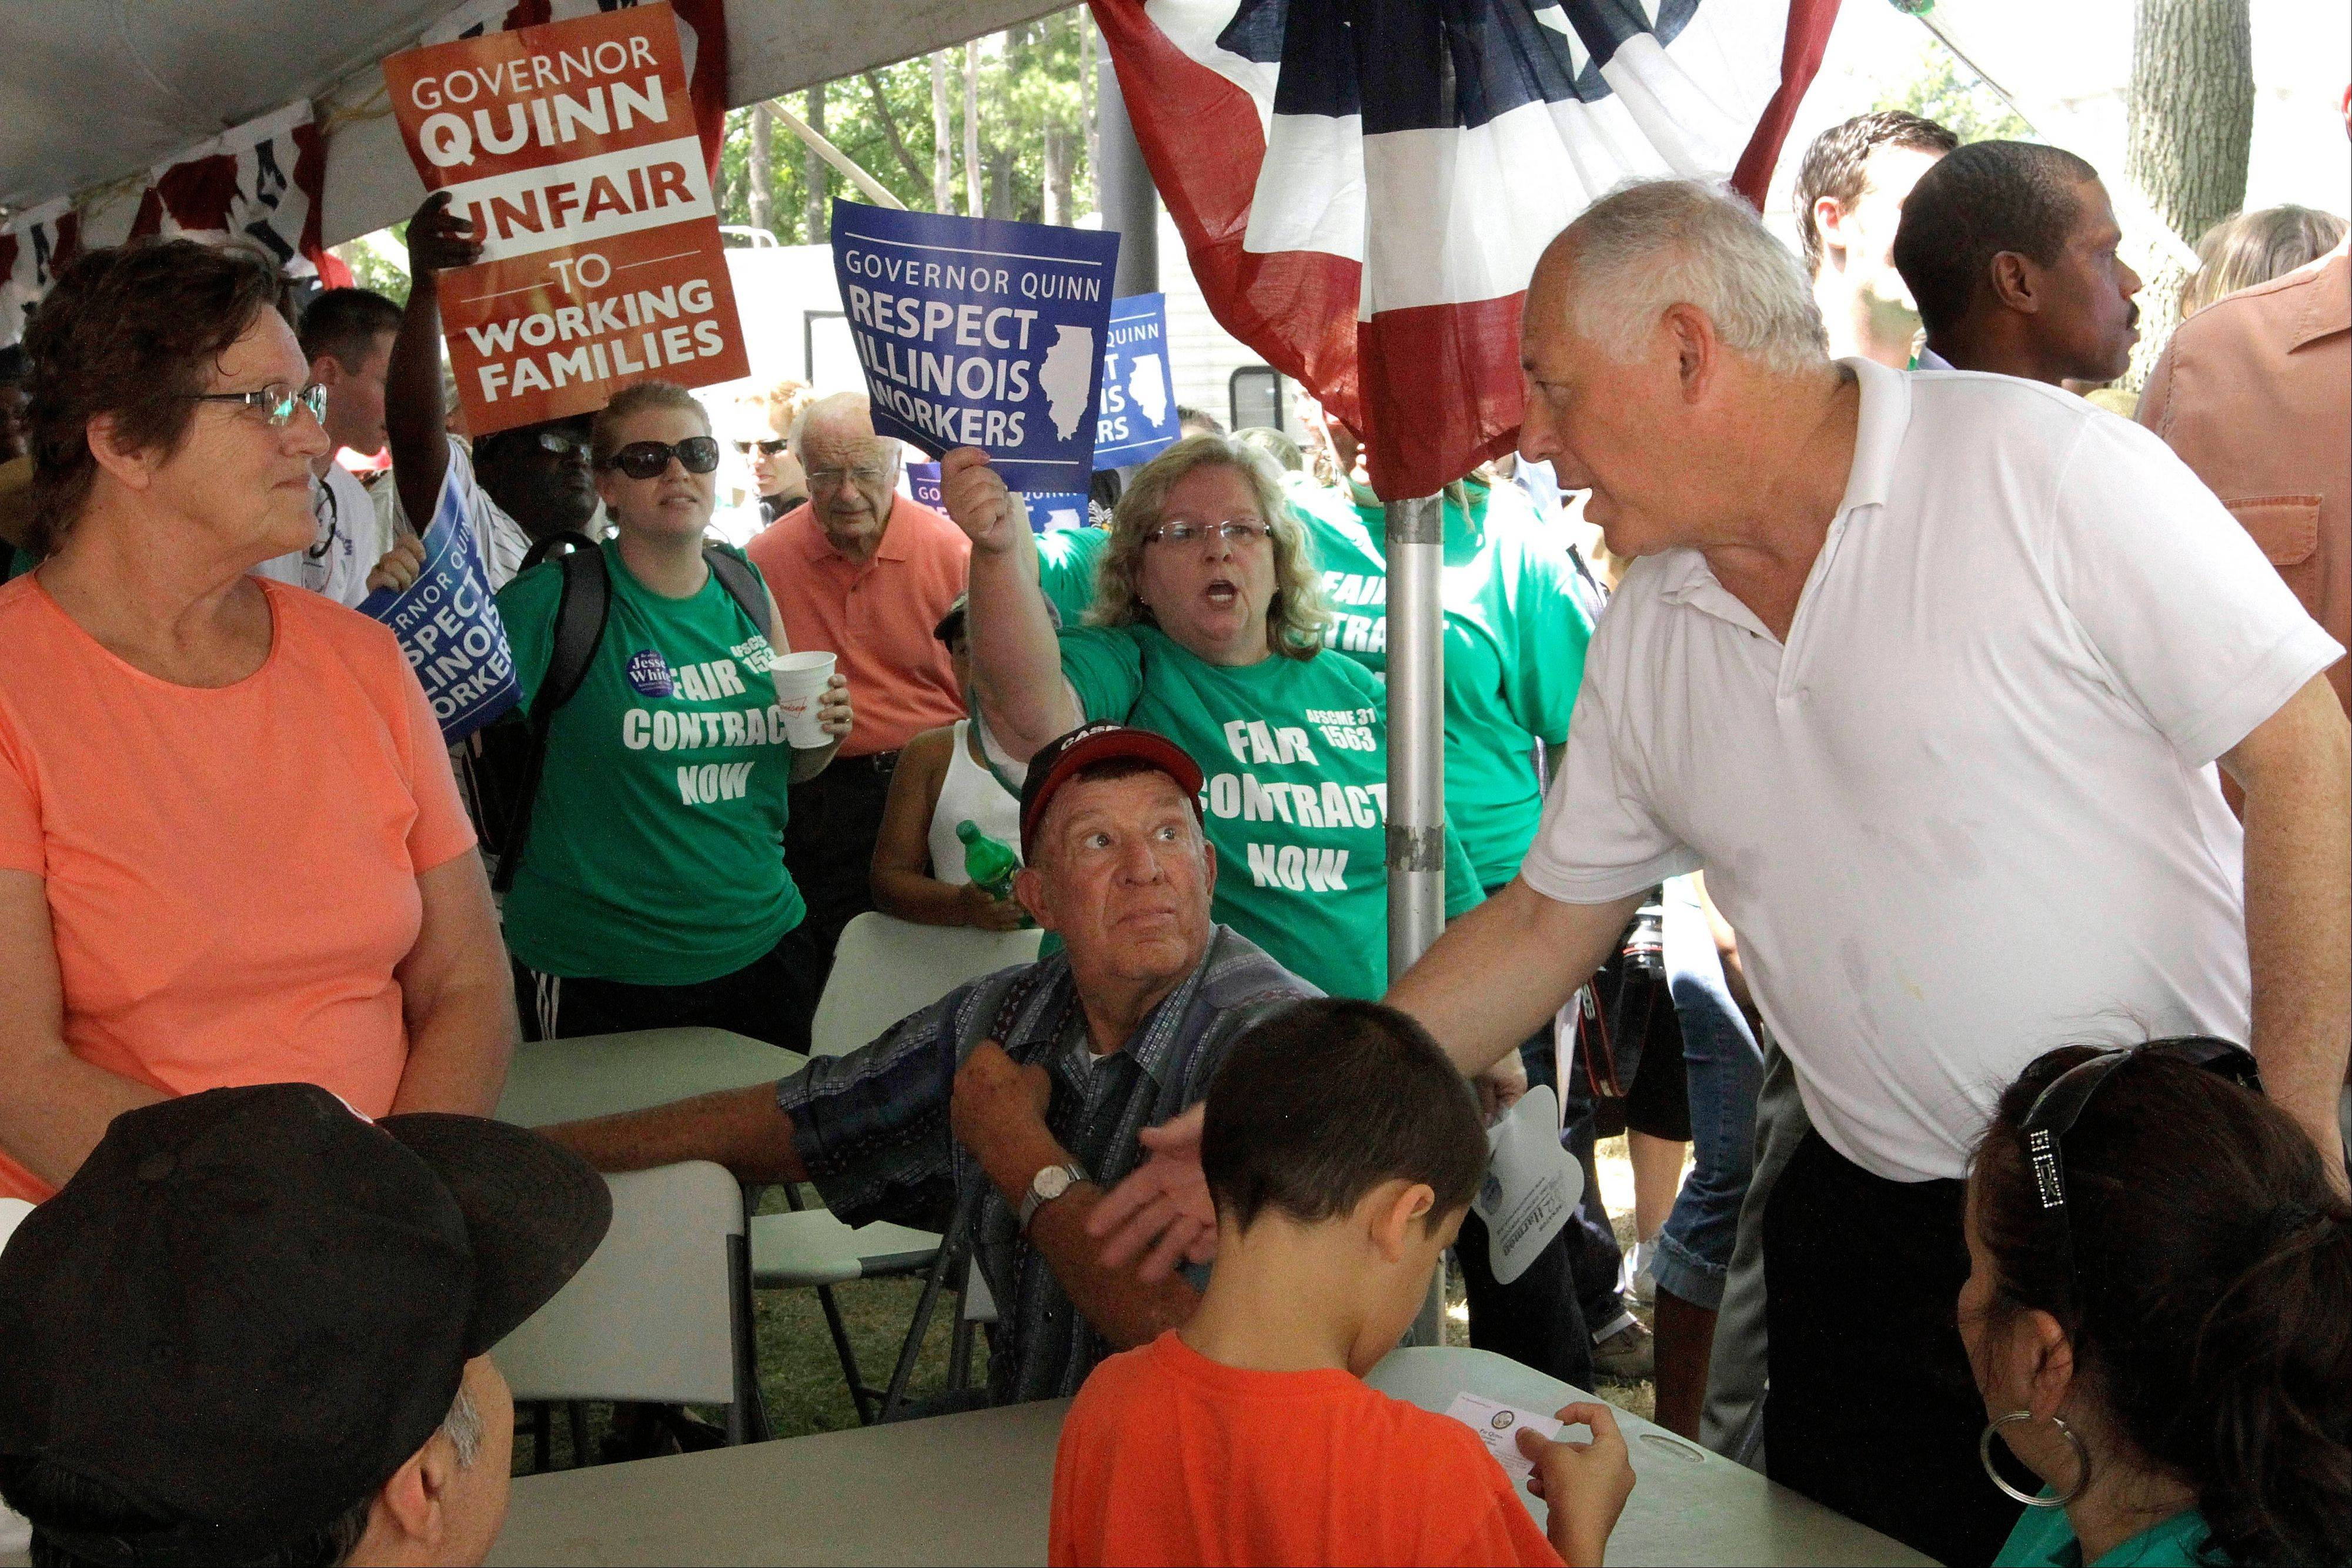 Illinois Gov. Pat Quinn, right, tries to greet supporters Wednesday while surrounded by booing union members during the Governor's Day rally at the Illinois State Fair.